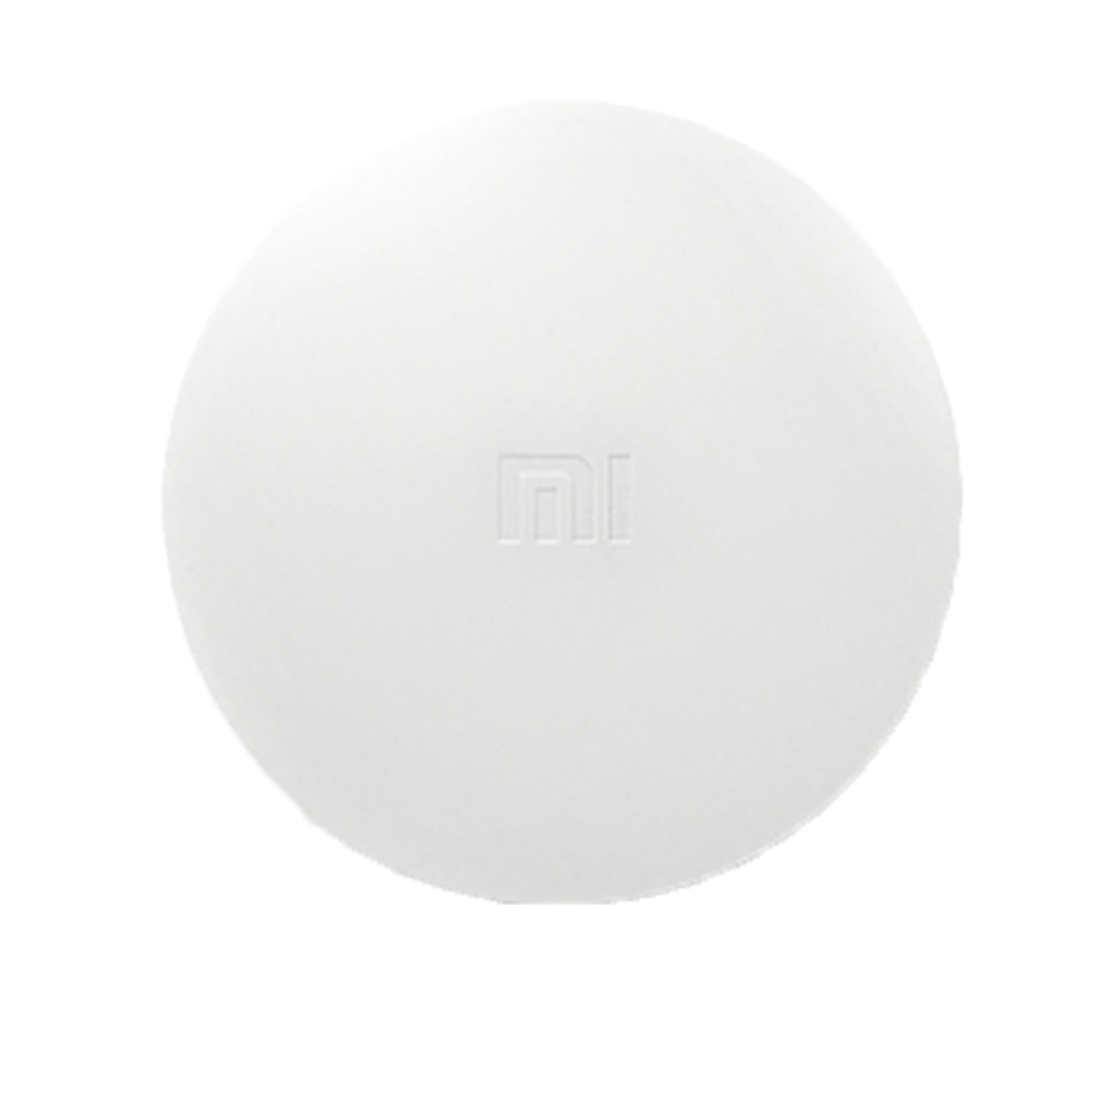 Xiaomi Smart Switch Smart Home Accessories Xiaomi Wireless Switch House Control Center Intelligent Multifunction White Switch